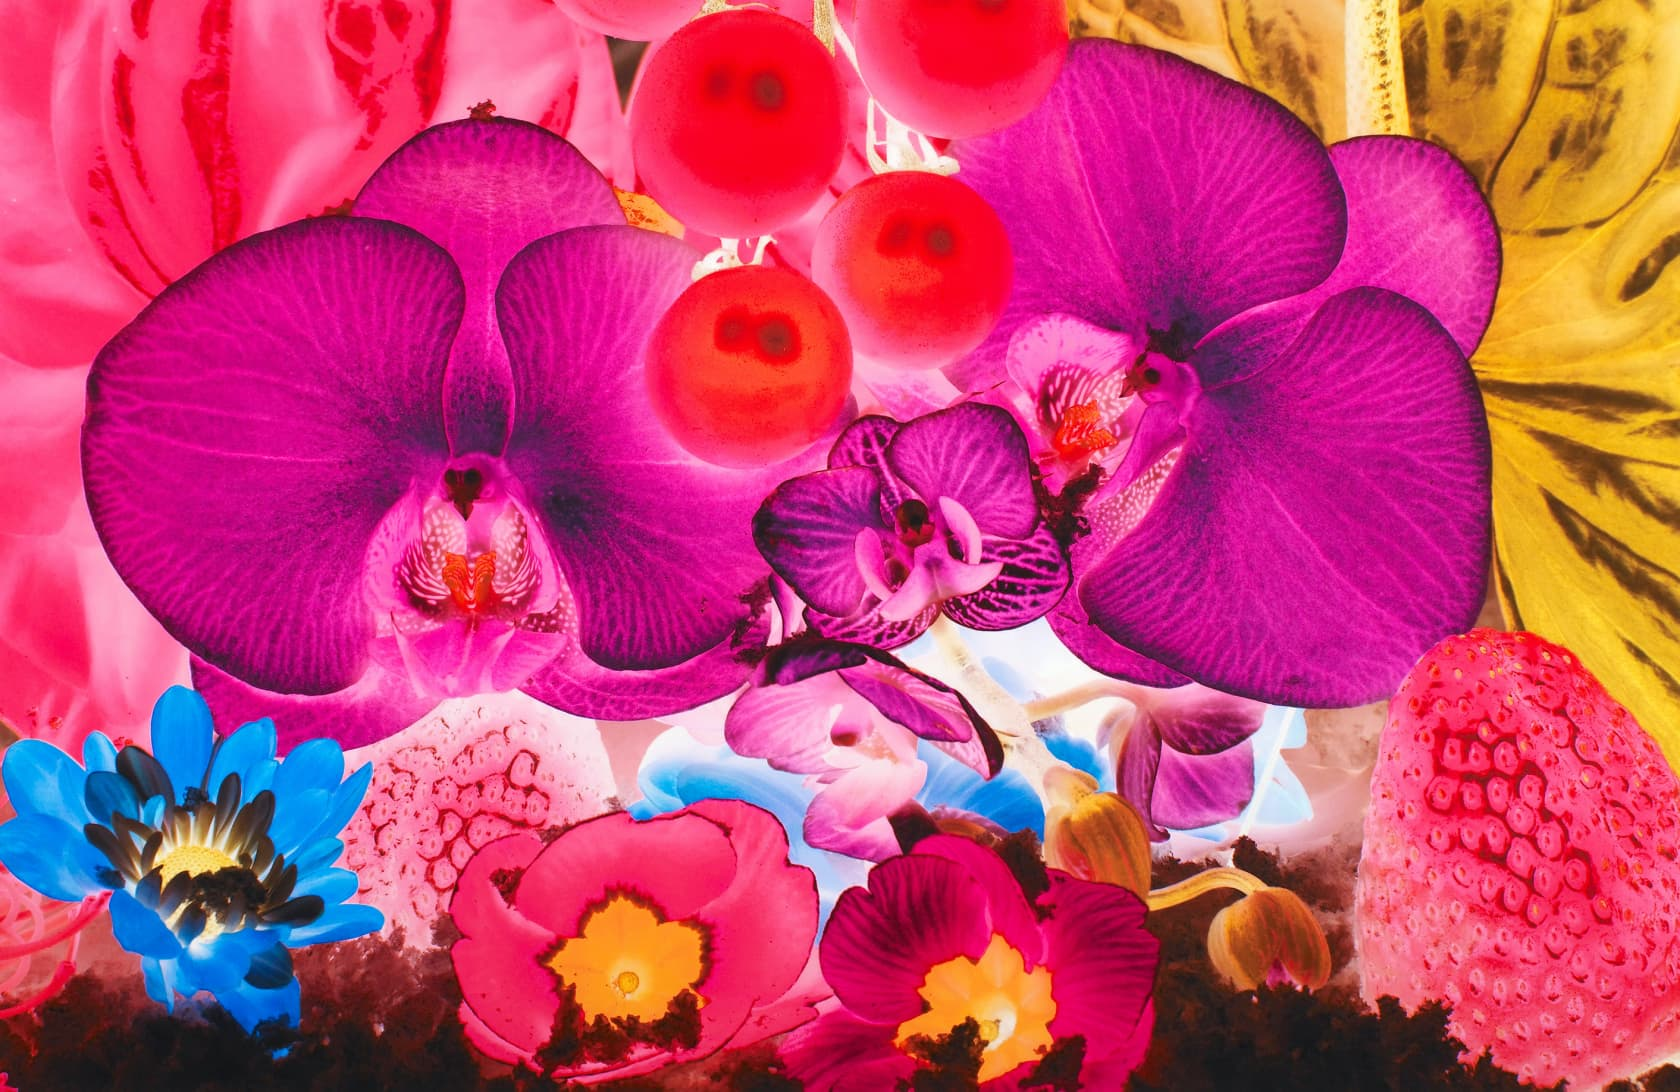 Marc Quinn At the Far Edges of the Universe #4 Pigment Print